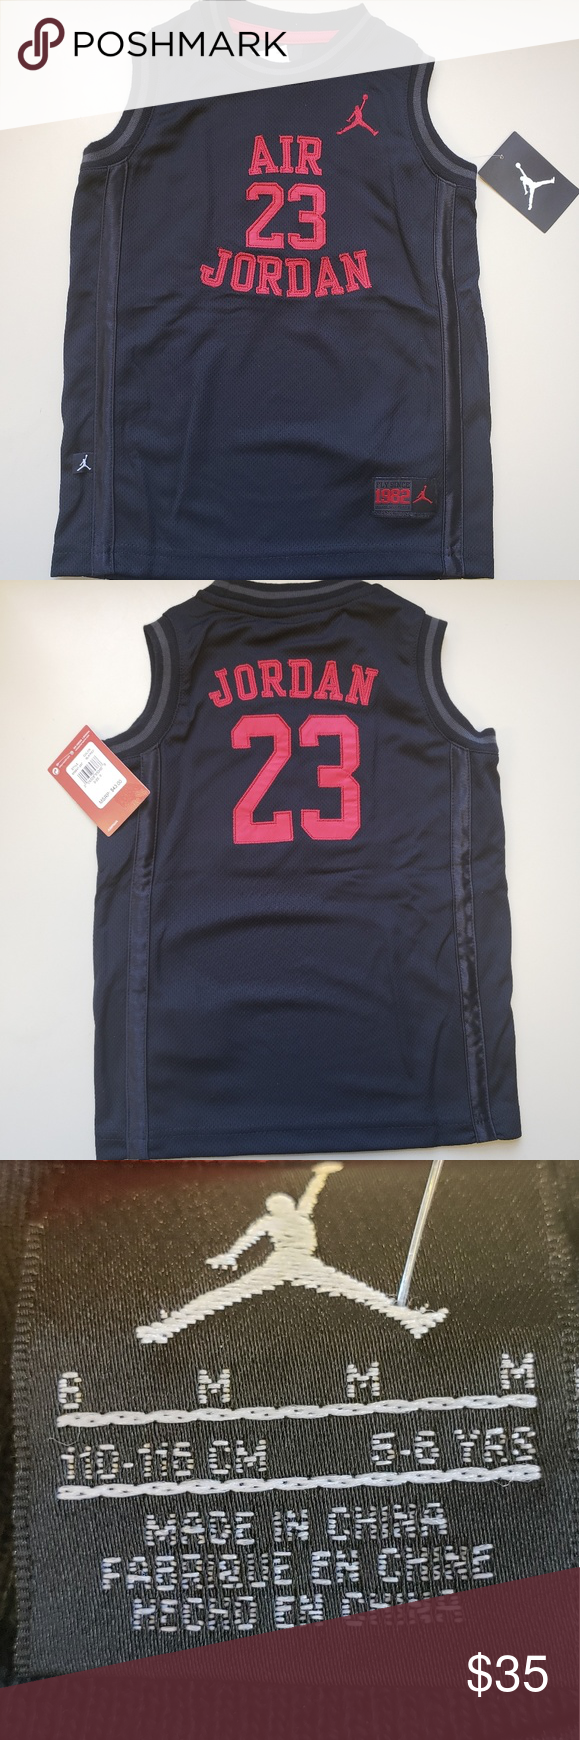 Brand new Air Jordan size 6 Boys JeJersey Black and red